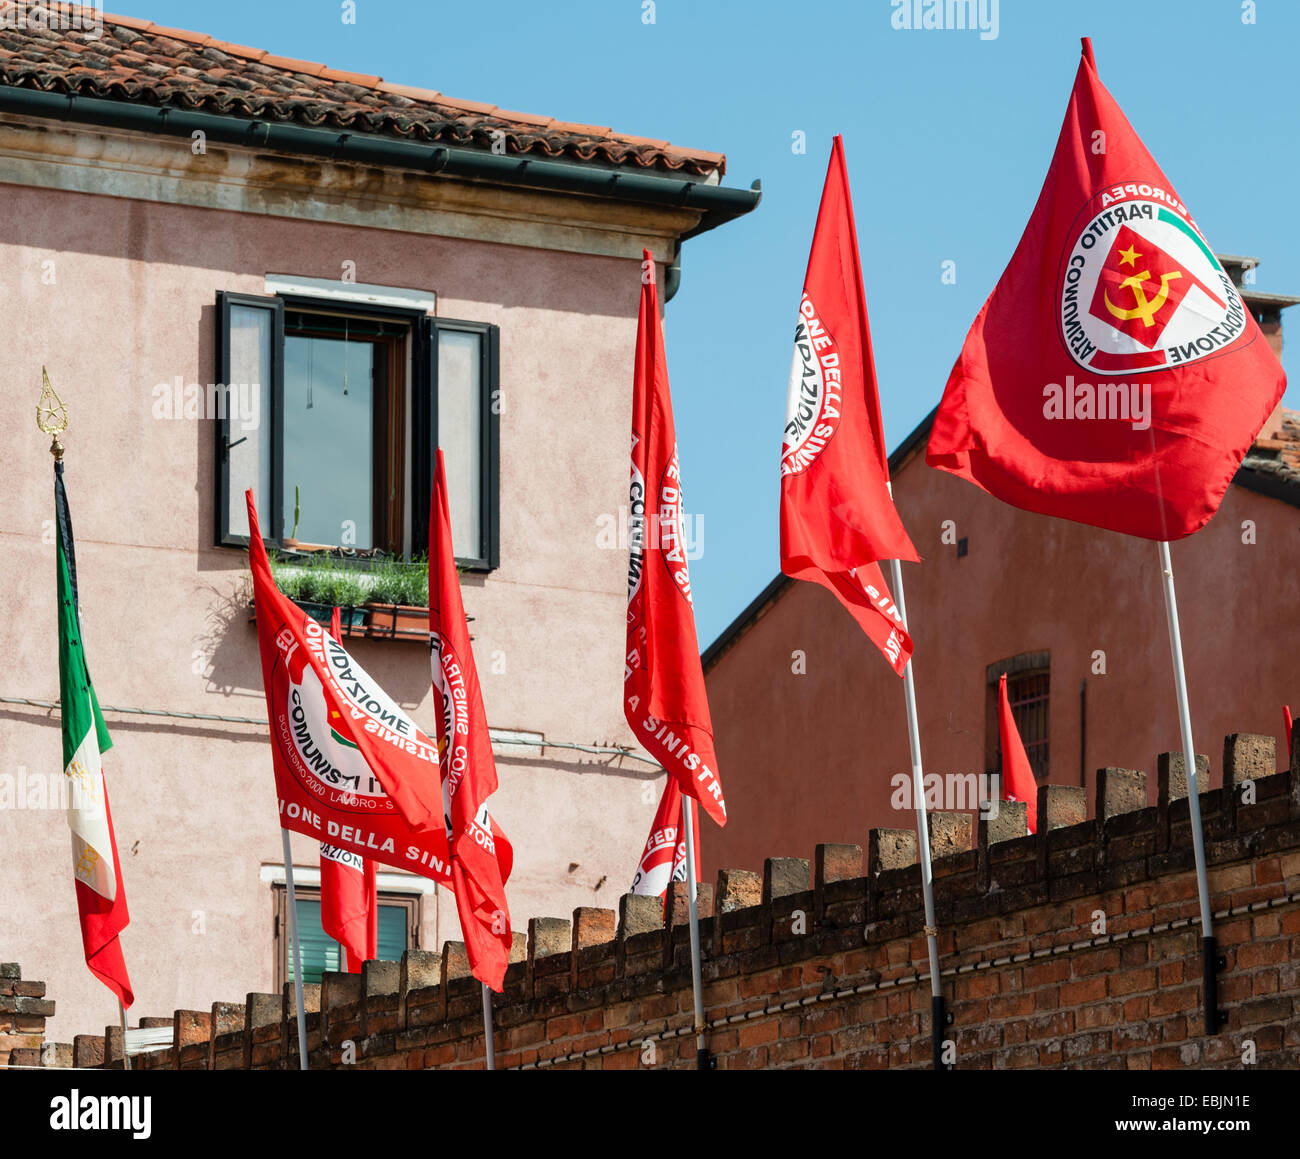 Venice, Italy. Italian Communist Party flags flying on May Day (International Workers' Day) - Stock Image